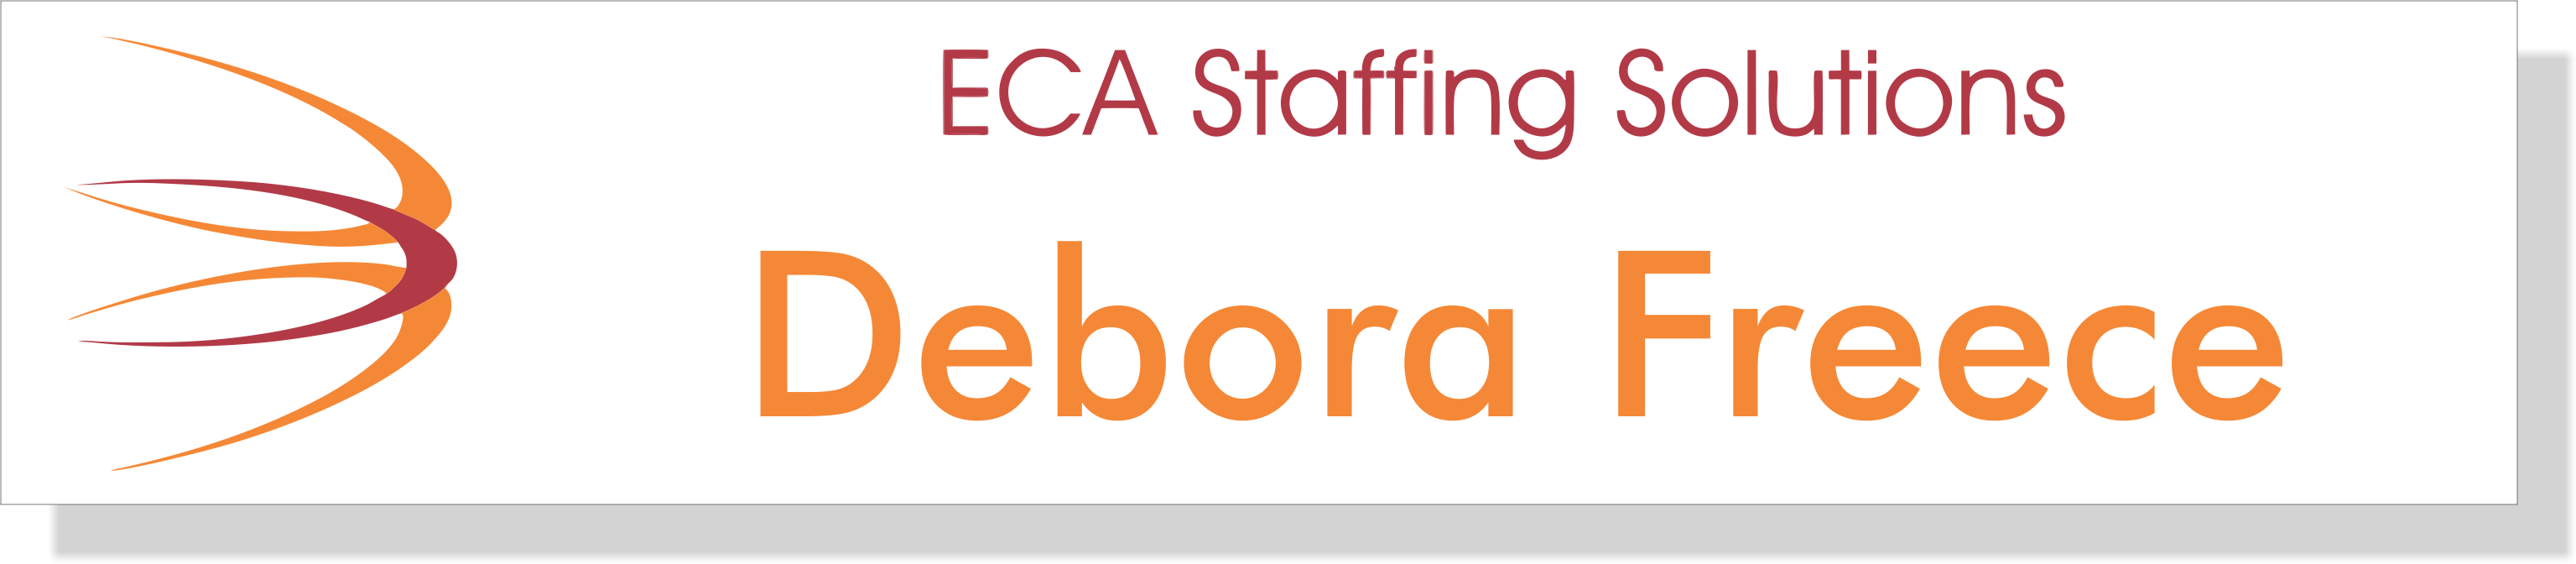 ECA Staffing Name Plate with Holder